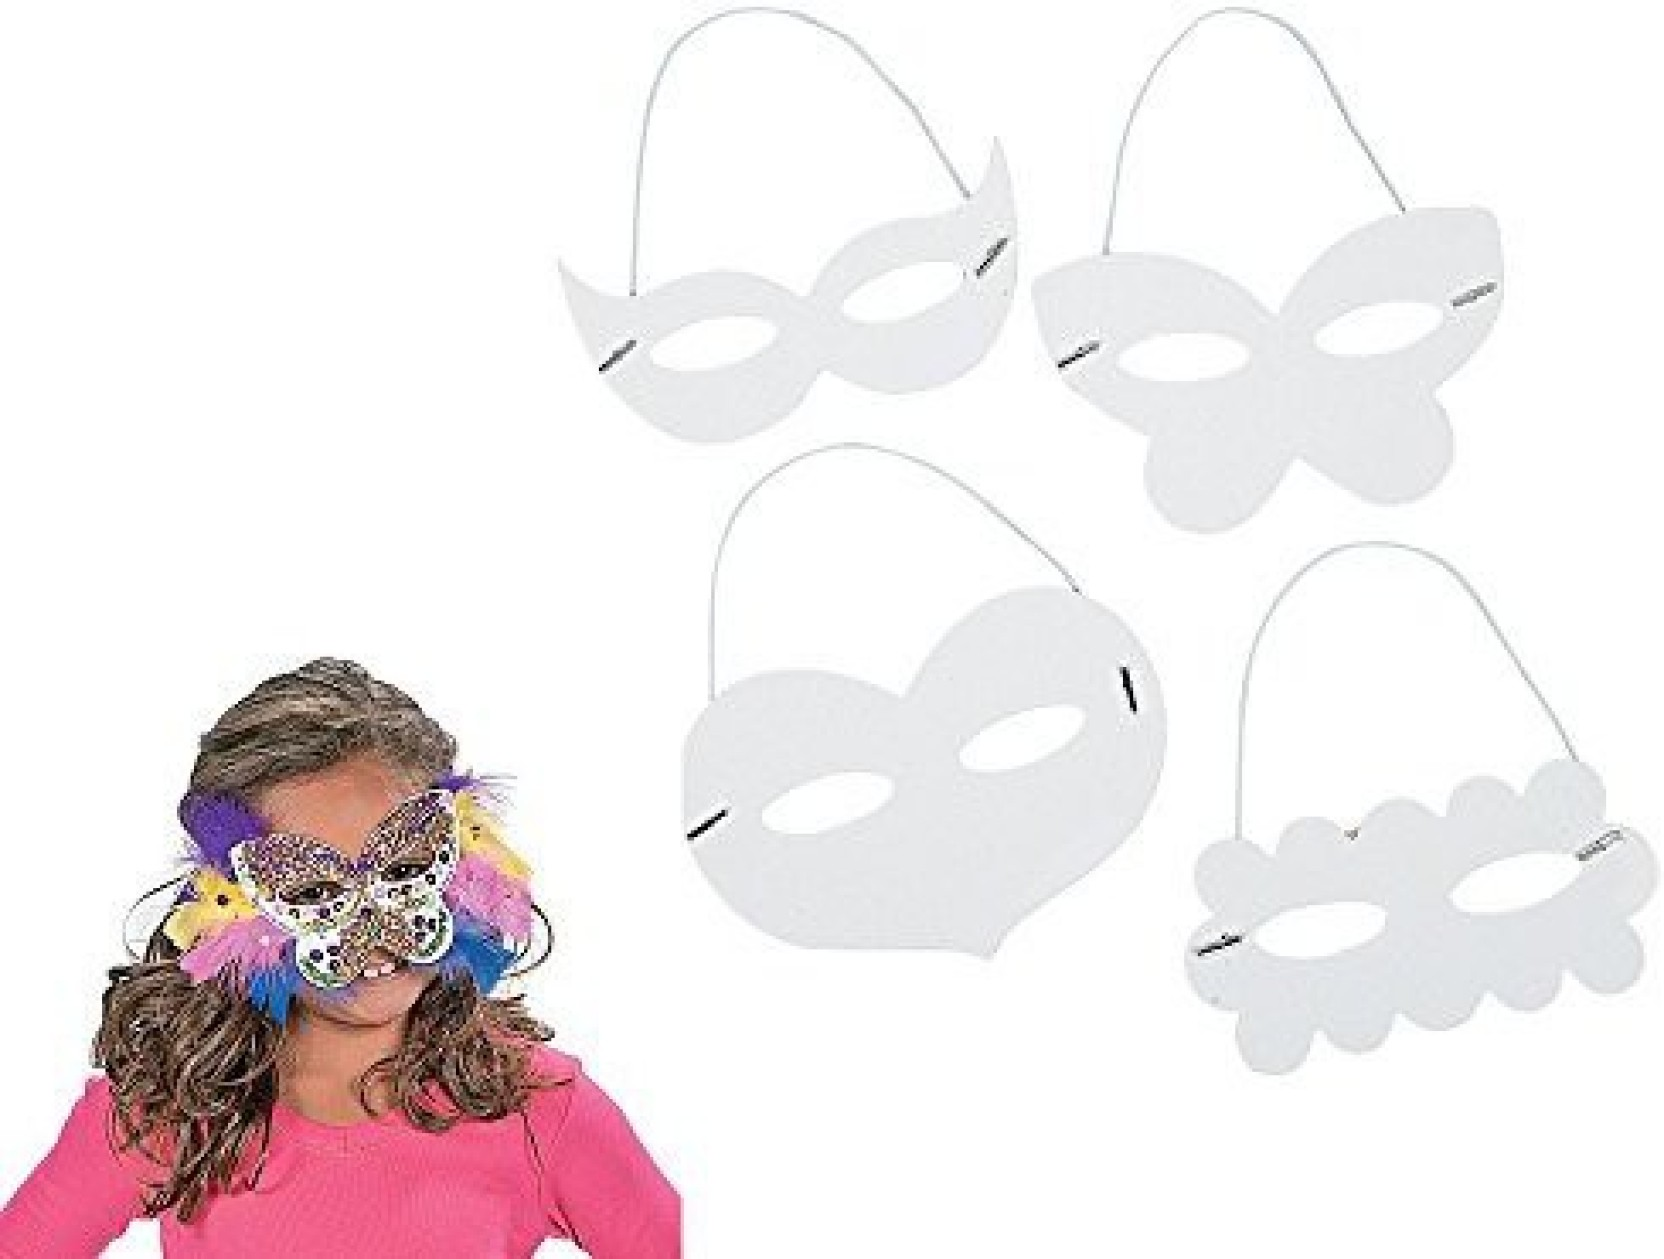 16 Assorted White Card Masks for Kids CraftsMasks to Decorate